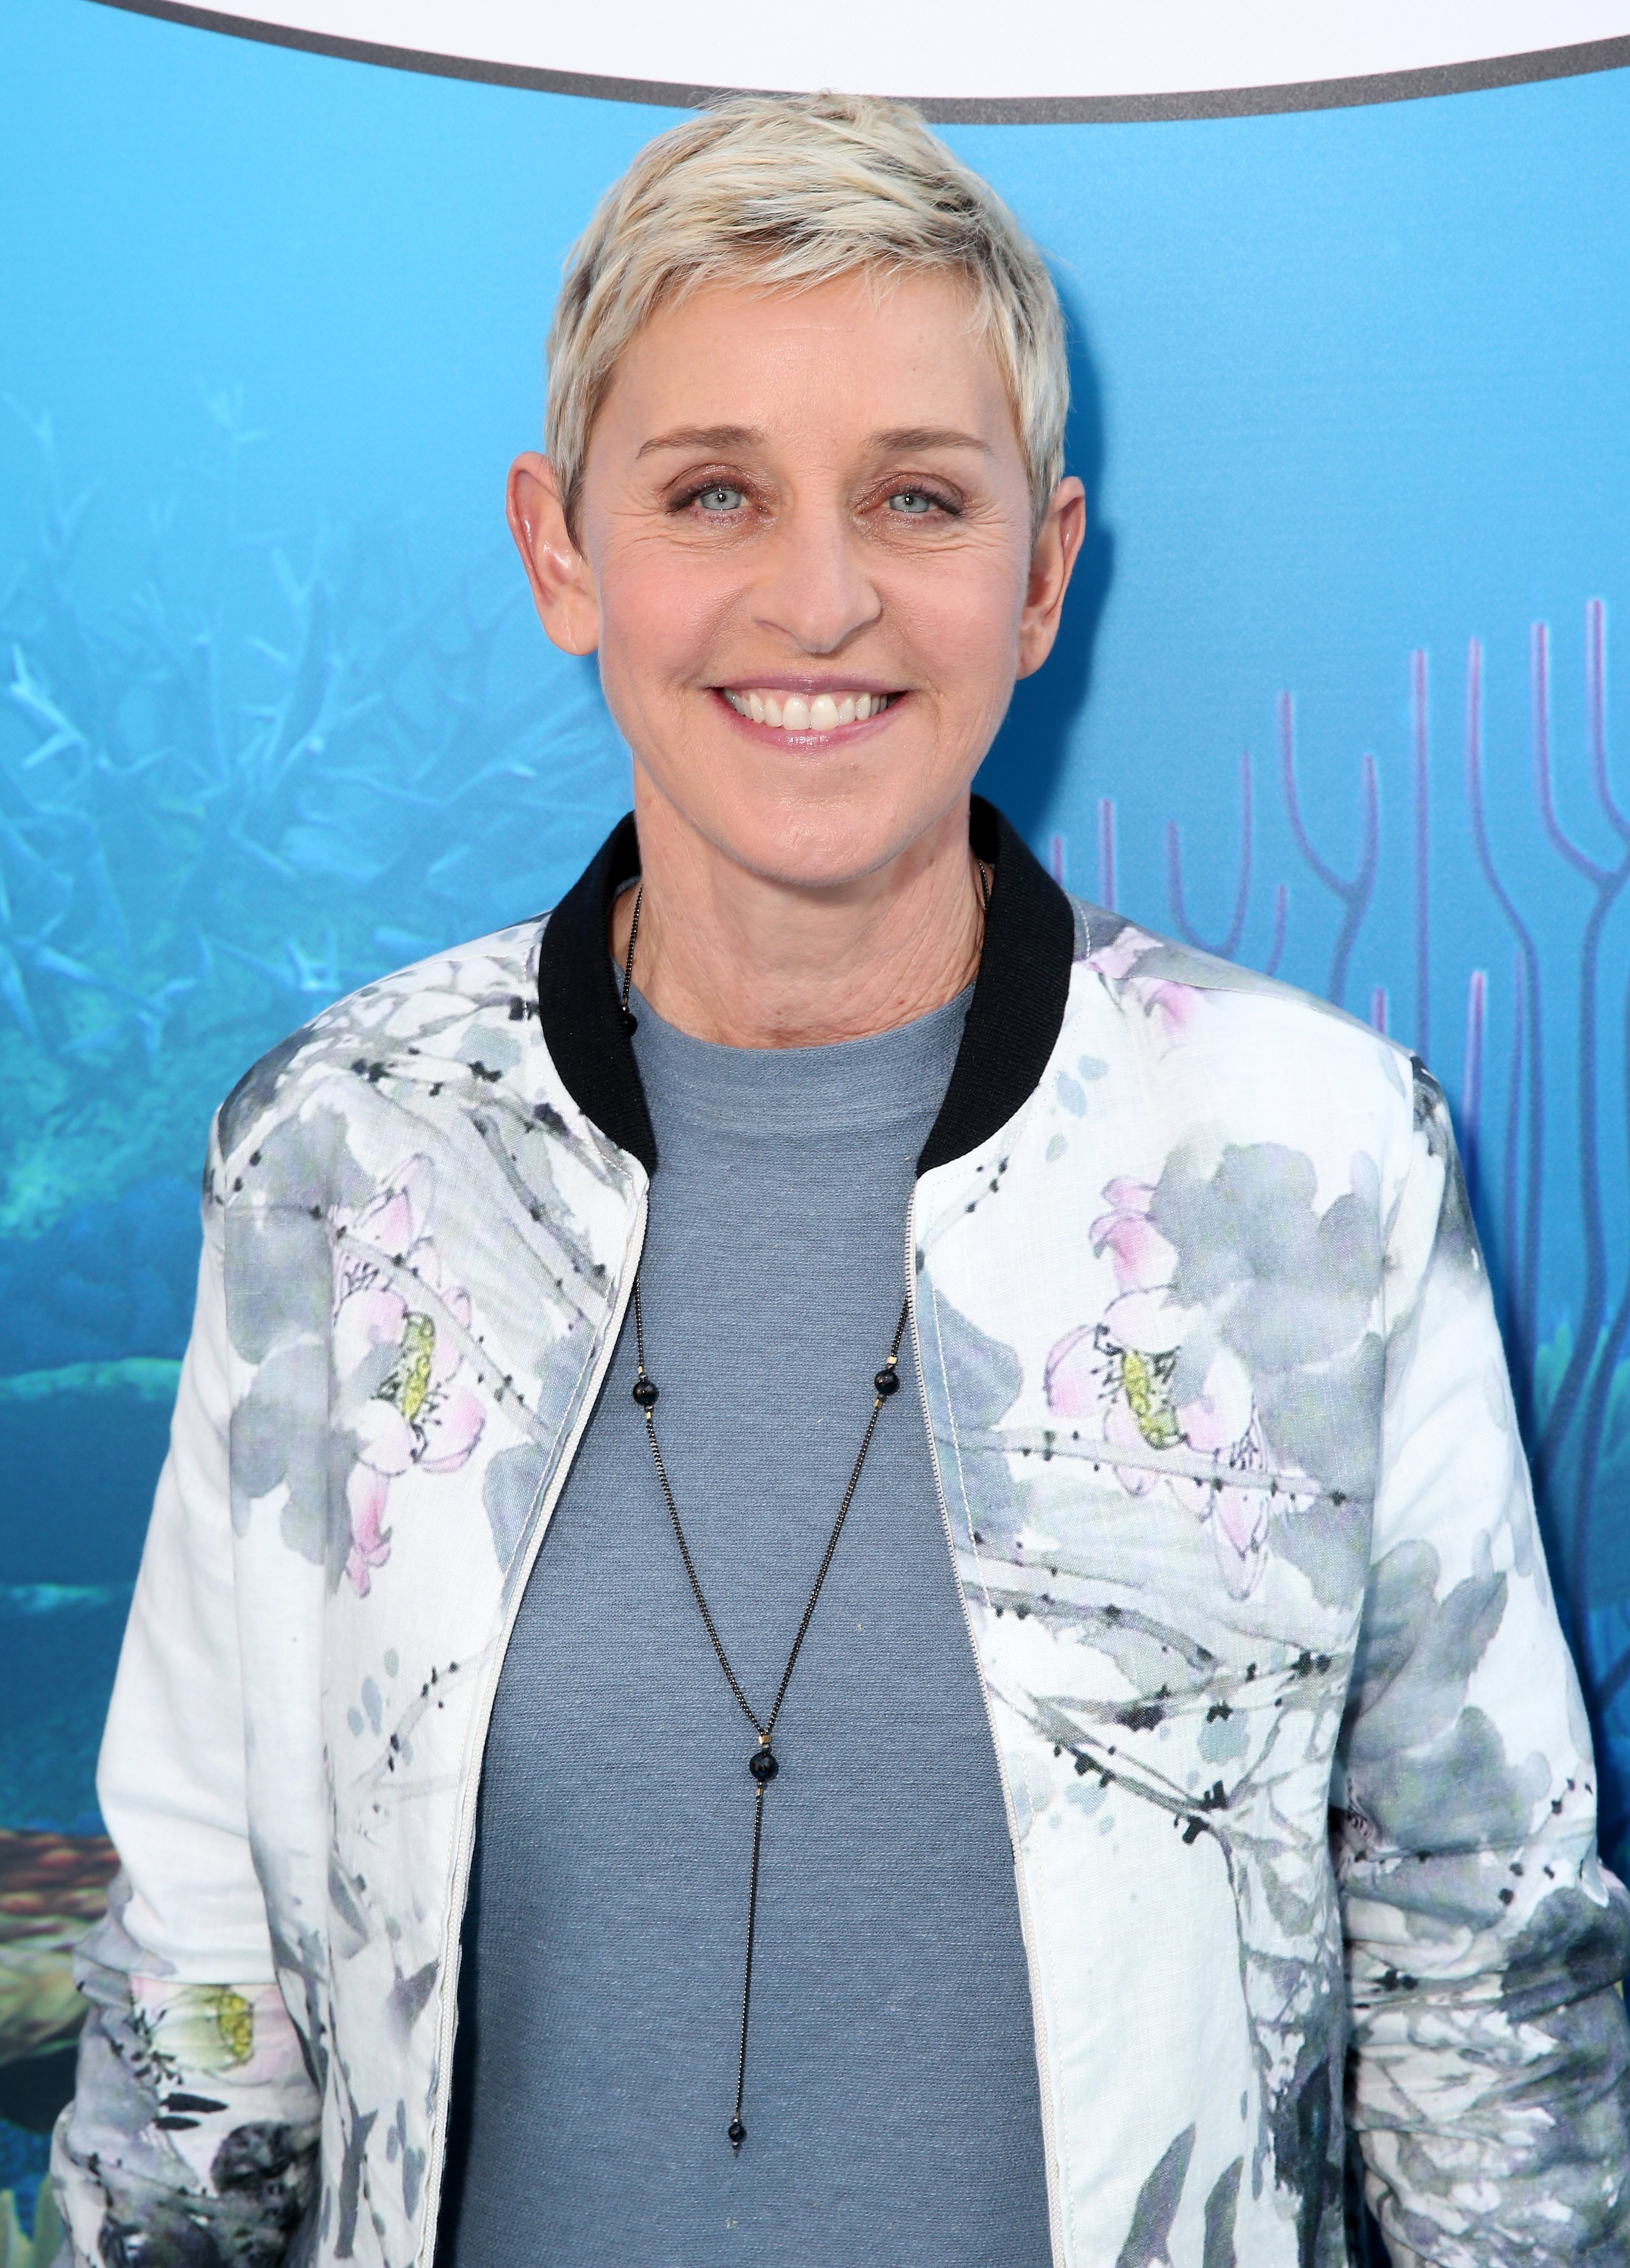 Ellen DeGeneres attends the world premiere of  'Finding Dory' on June 8, 2016, in Hollywood, California. | Source: Getty Images.